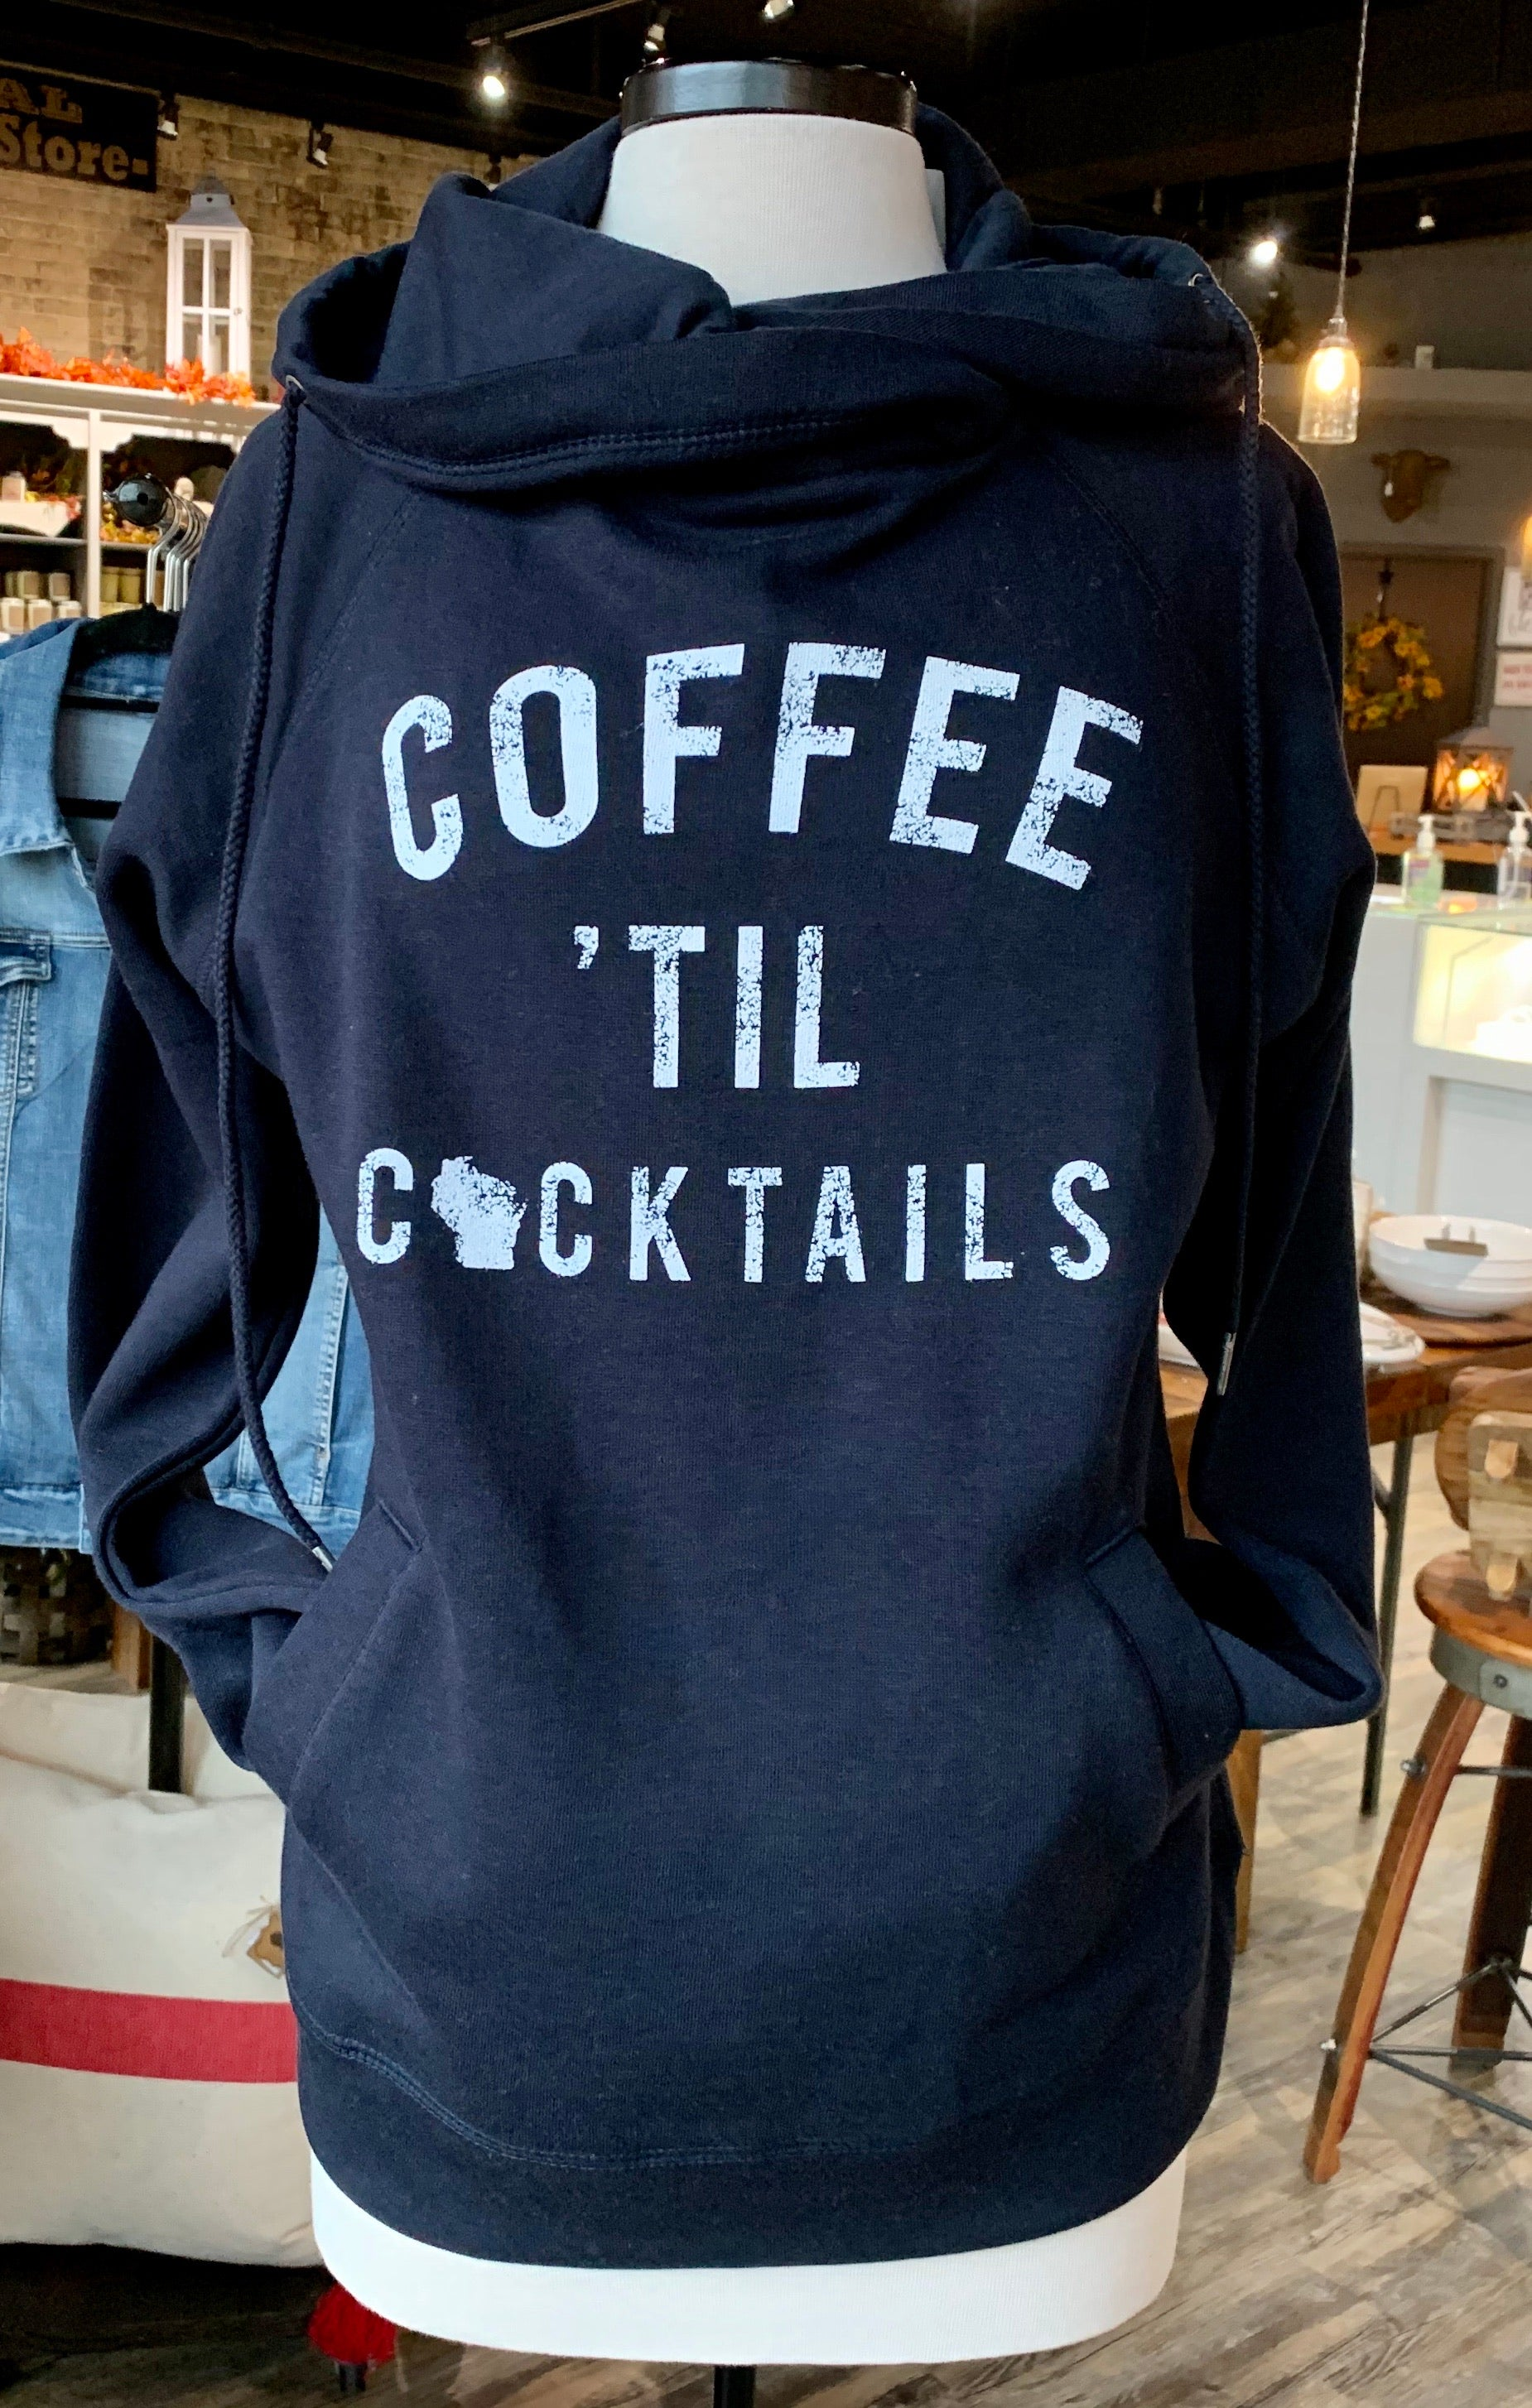 Coffee til Cocktails Sweatshirt-Navy with white lettering